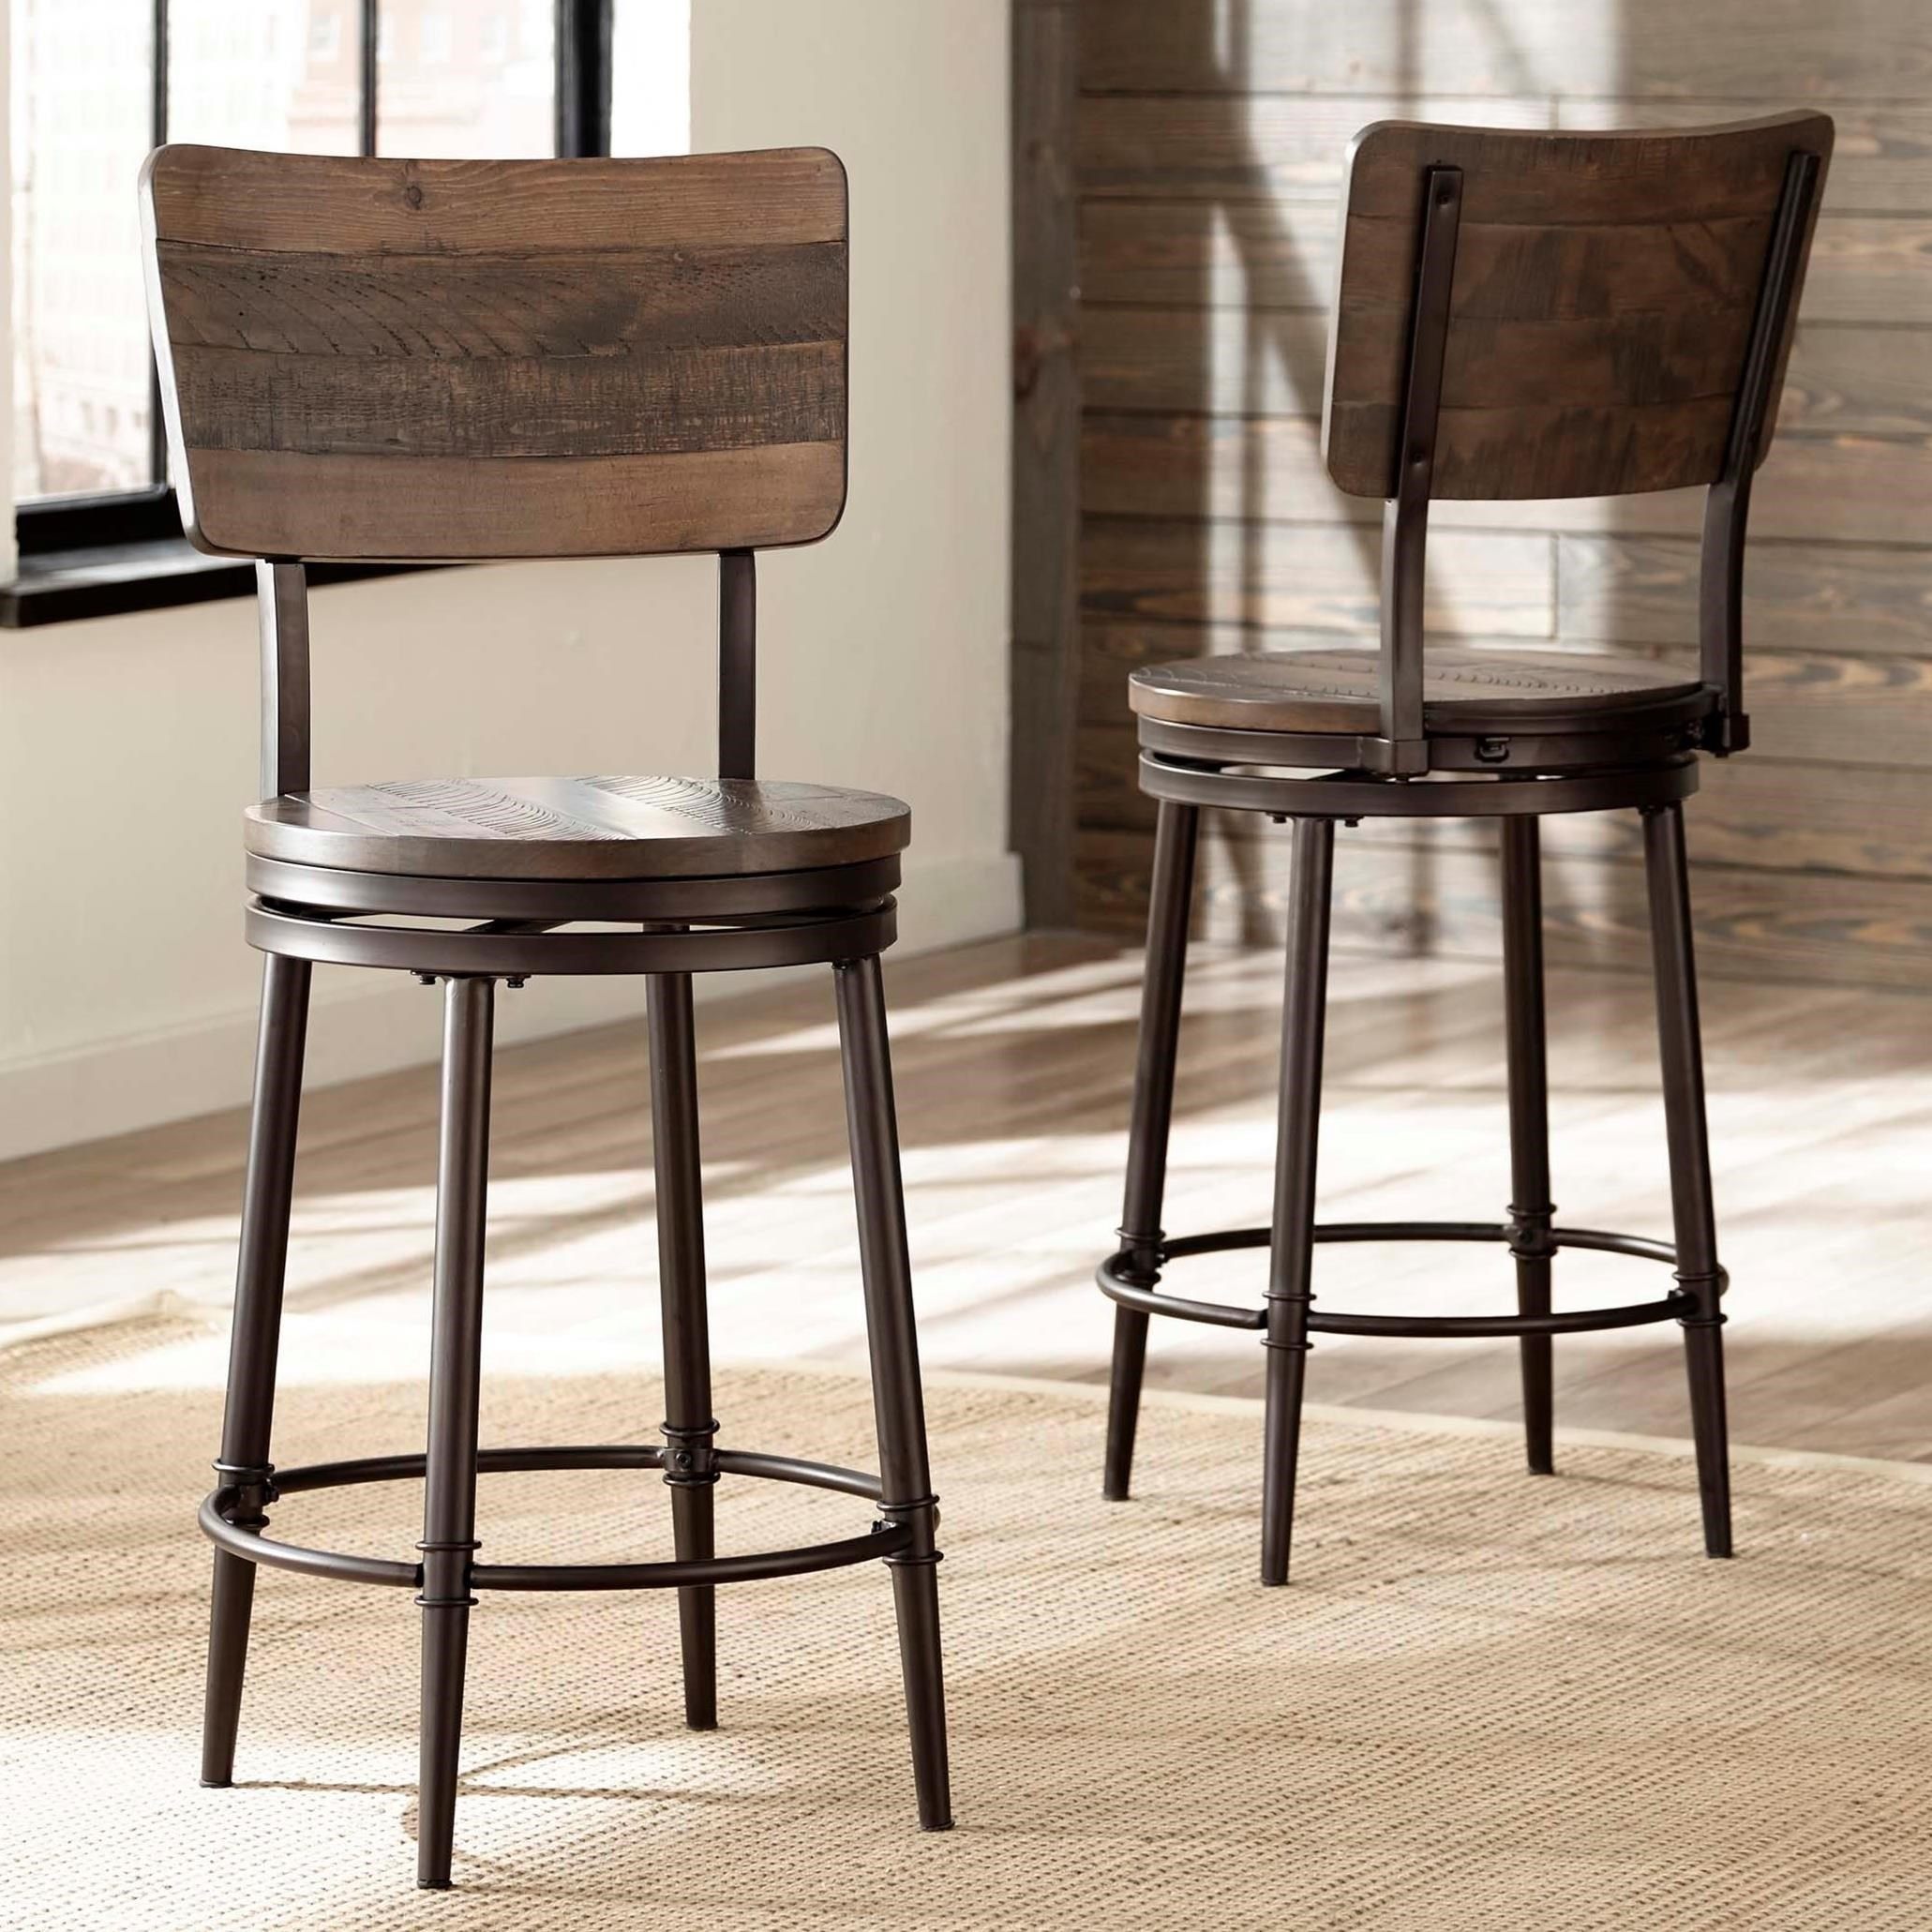 Bar American Furniture Stools